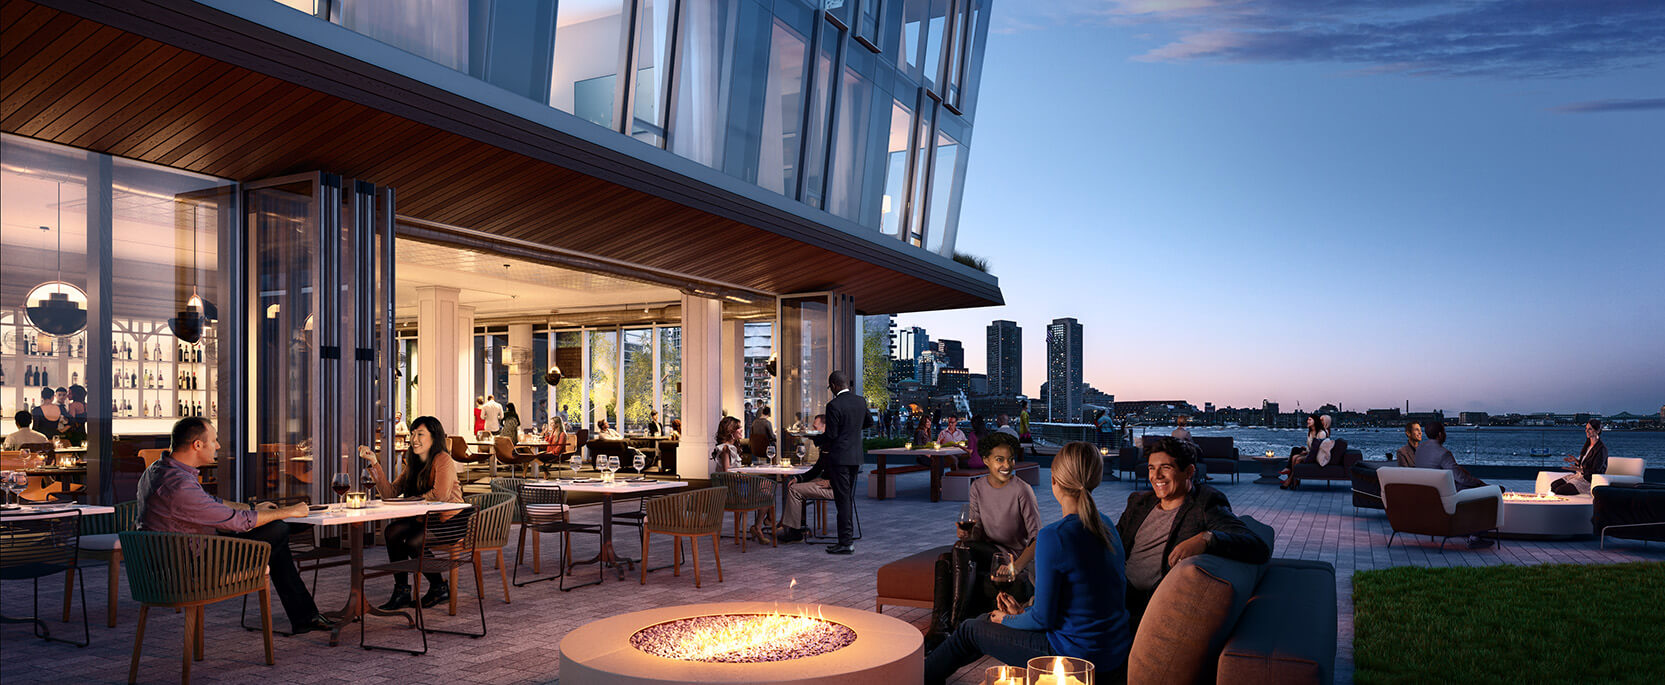 PIER 4 Restaurant Boston Exterior by Tishman Speyer